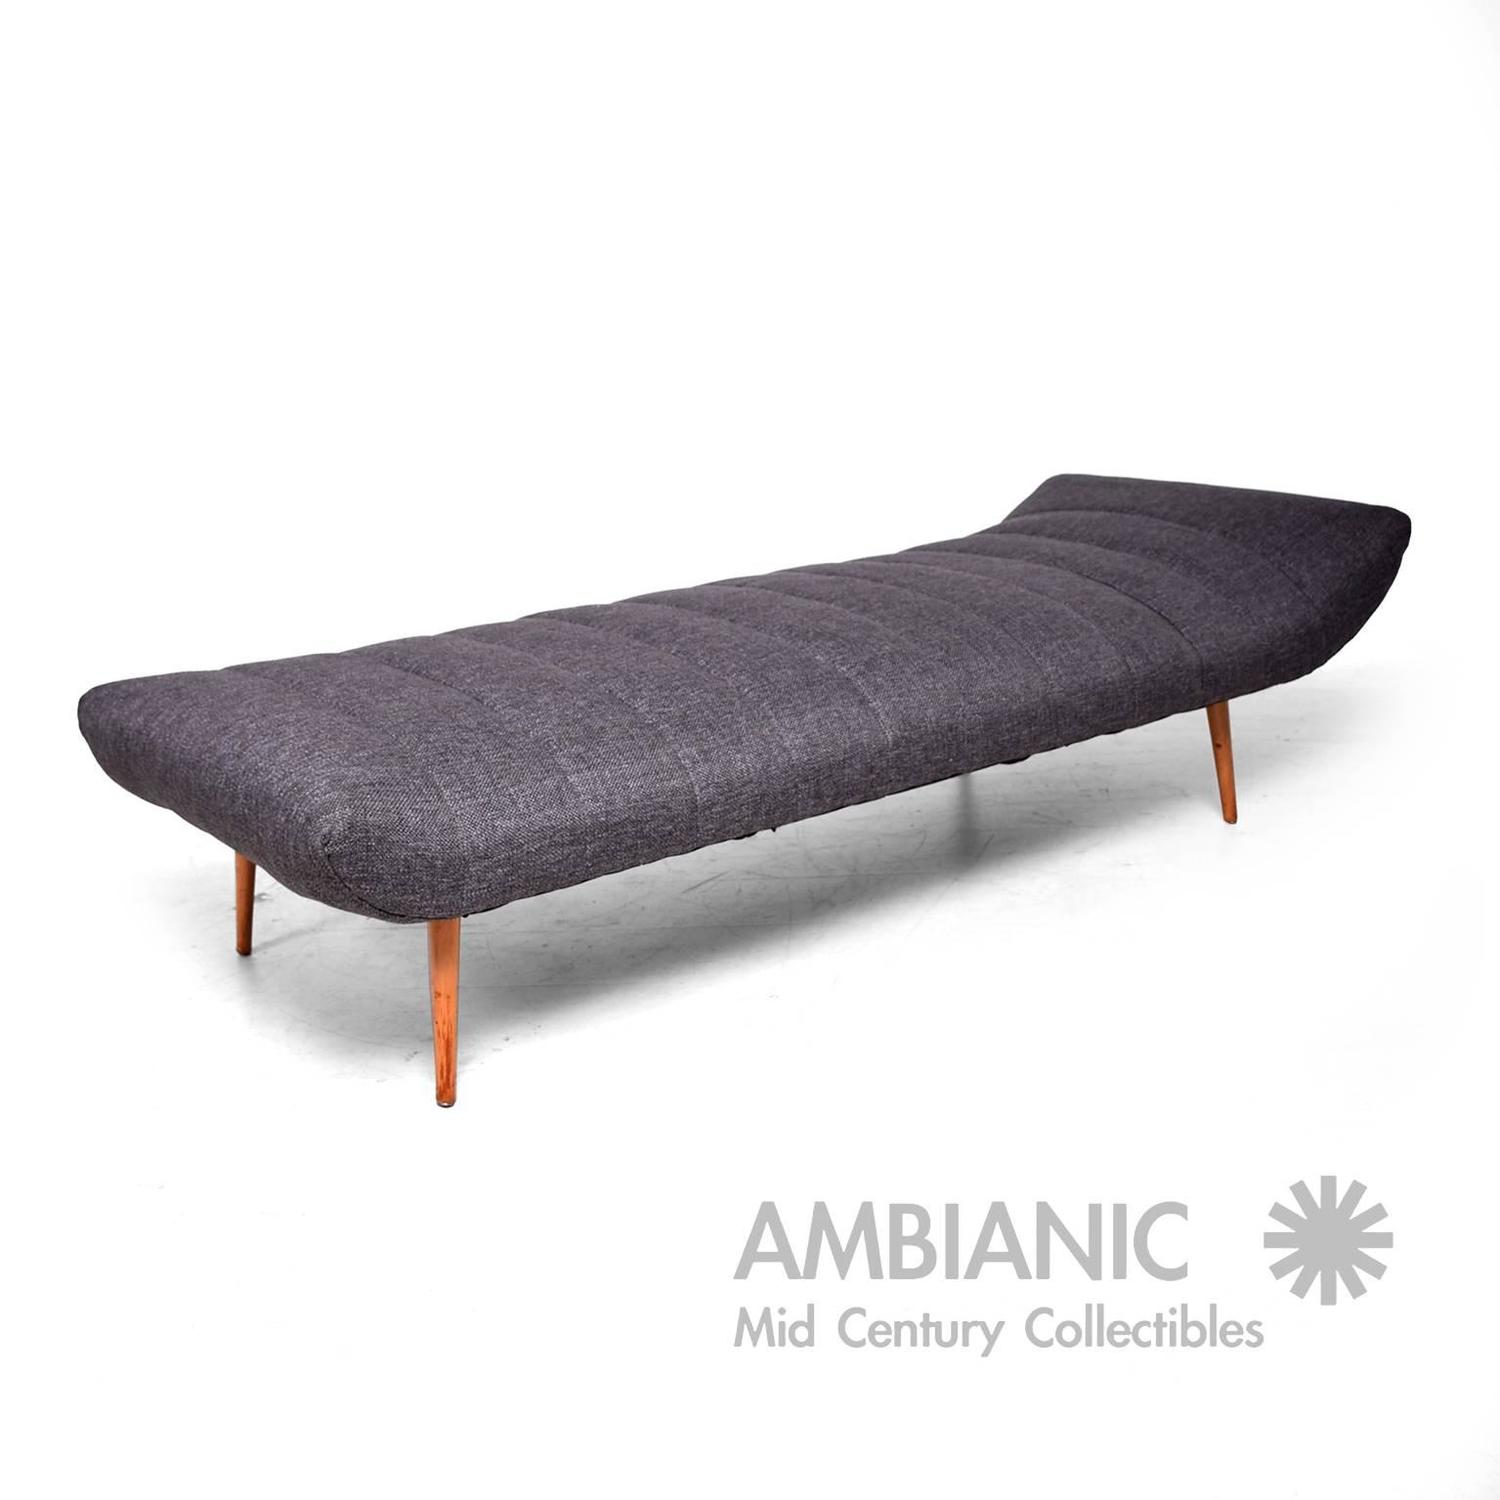 Mid Century Modern Chaise Lounge Daybed Attributed to Paul McCobb For Sale at 1stdibs